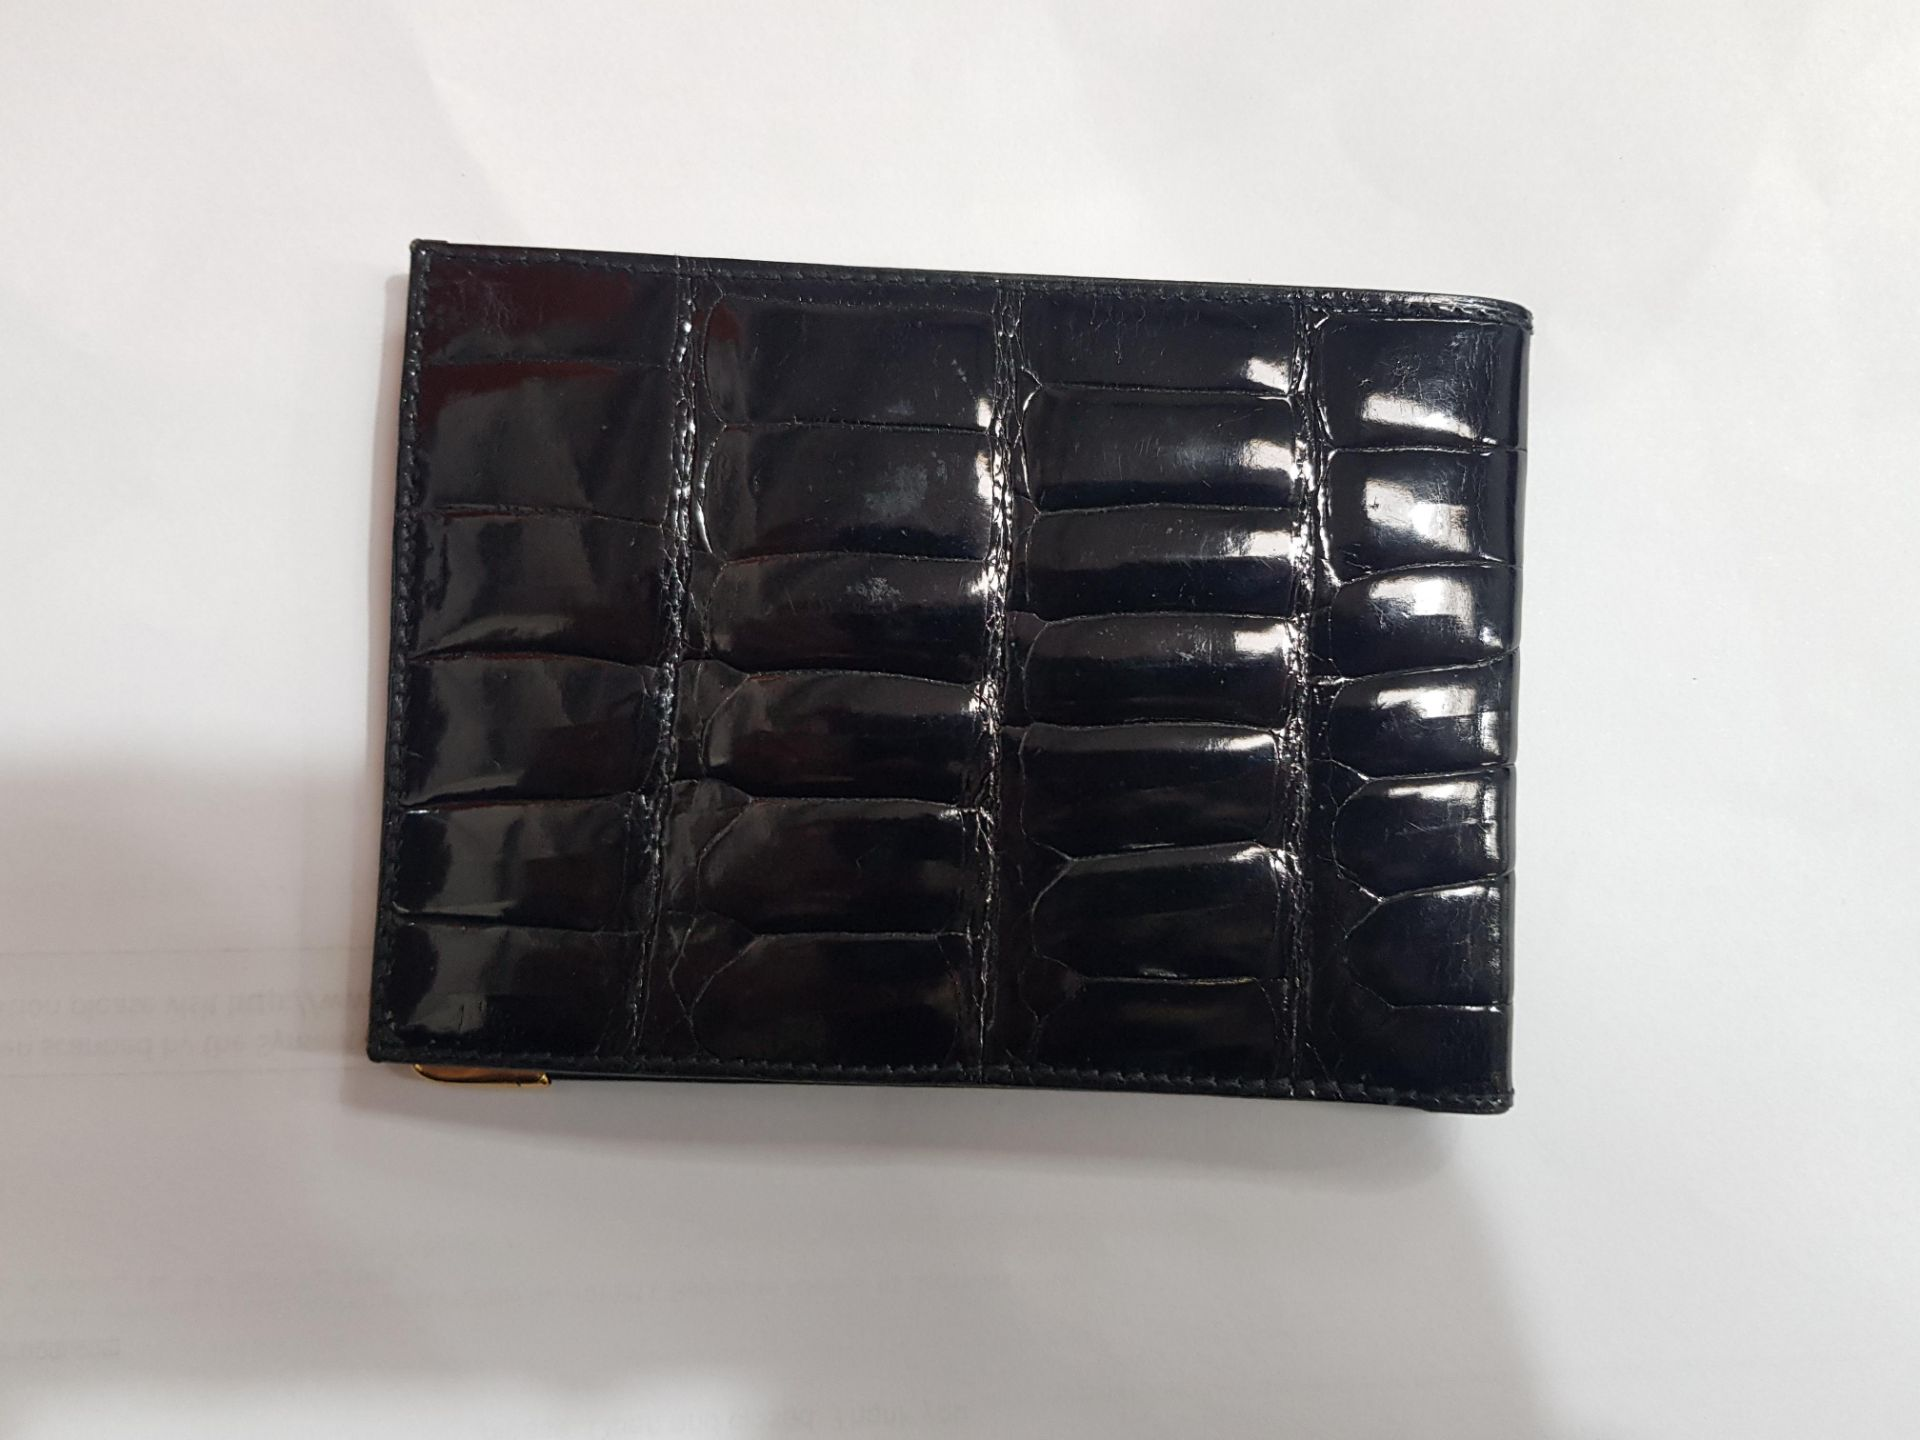 A GUCCI BLACK CROCODILE LEATHER WALLET - Image 4 of 4